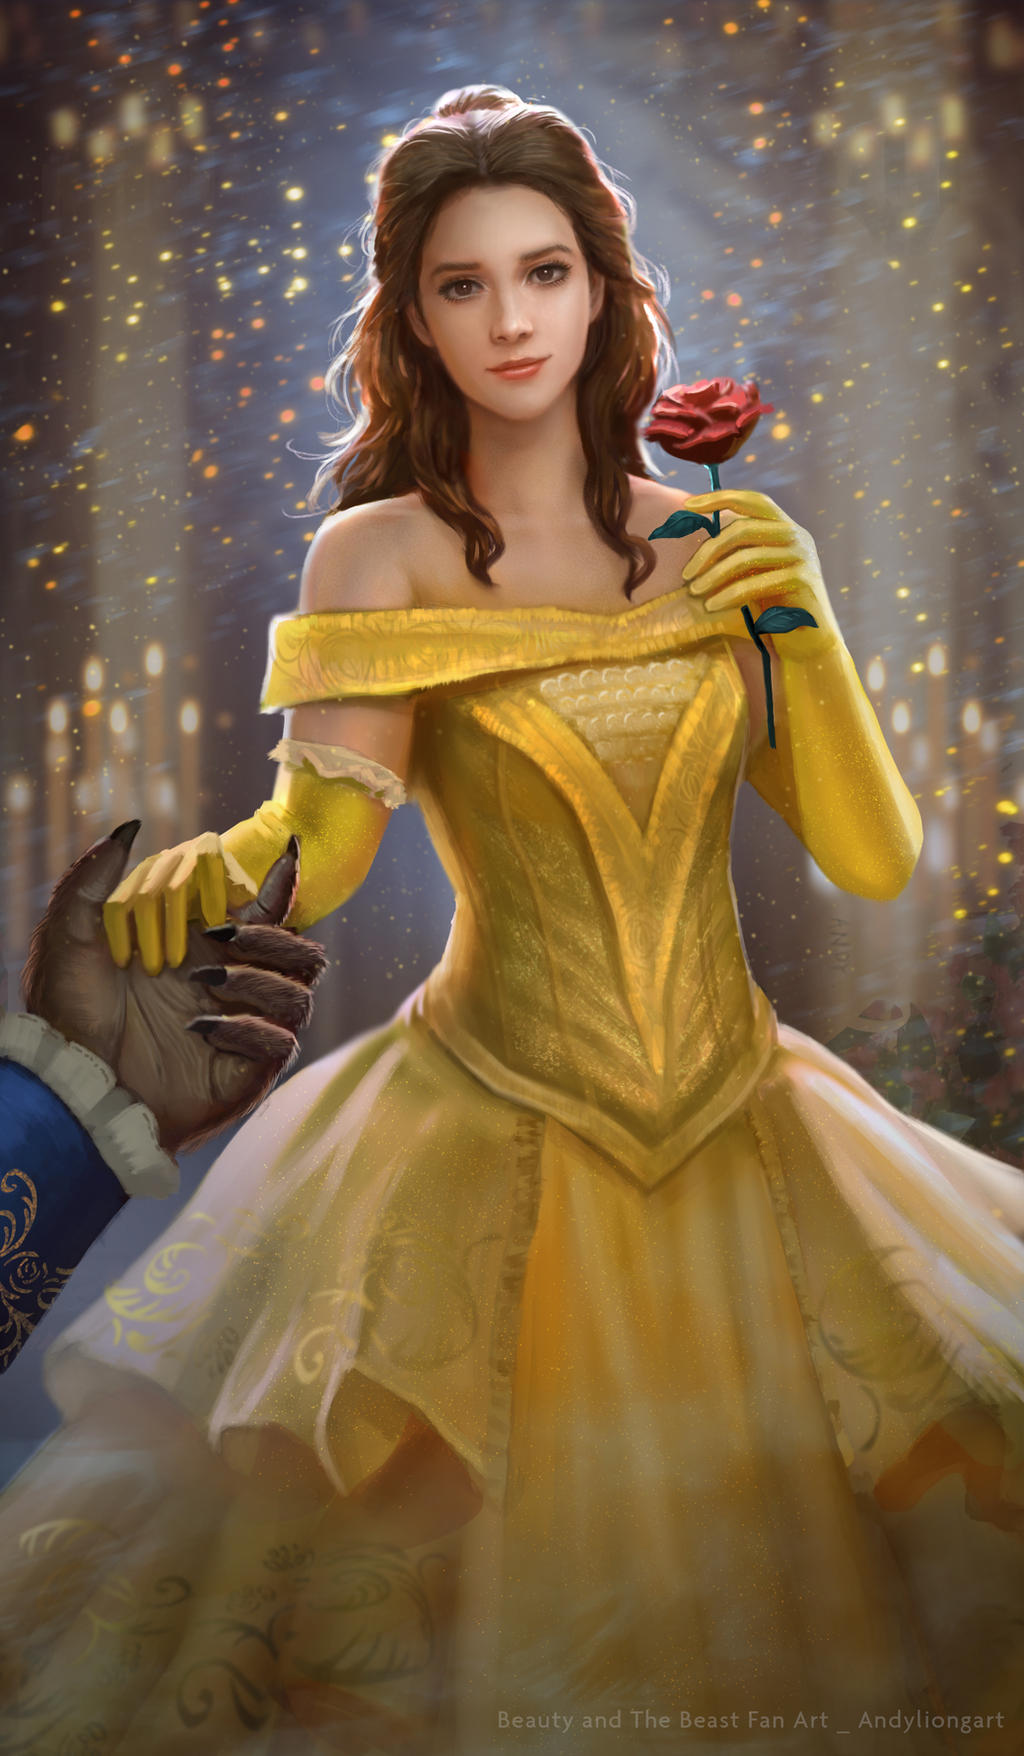 Belle Fan art_Beauty and the Beast 2017 by andyliongart